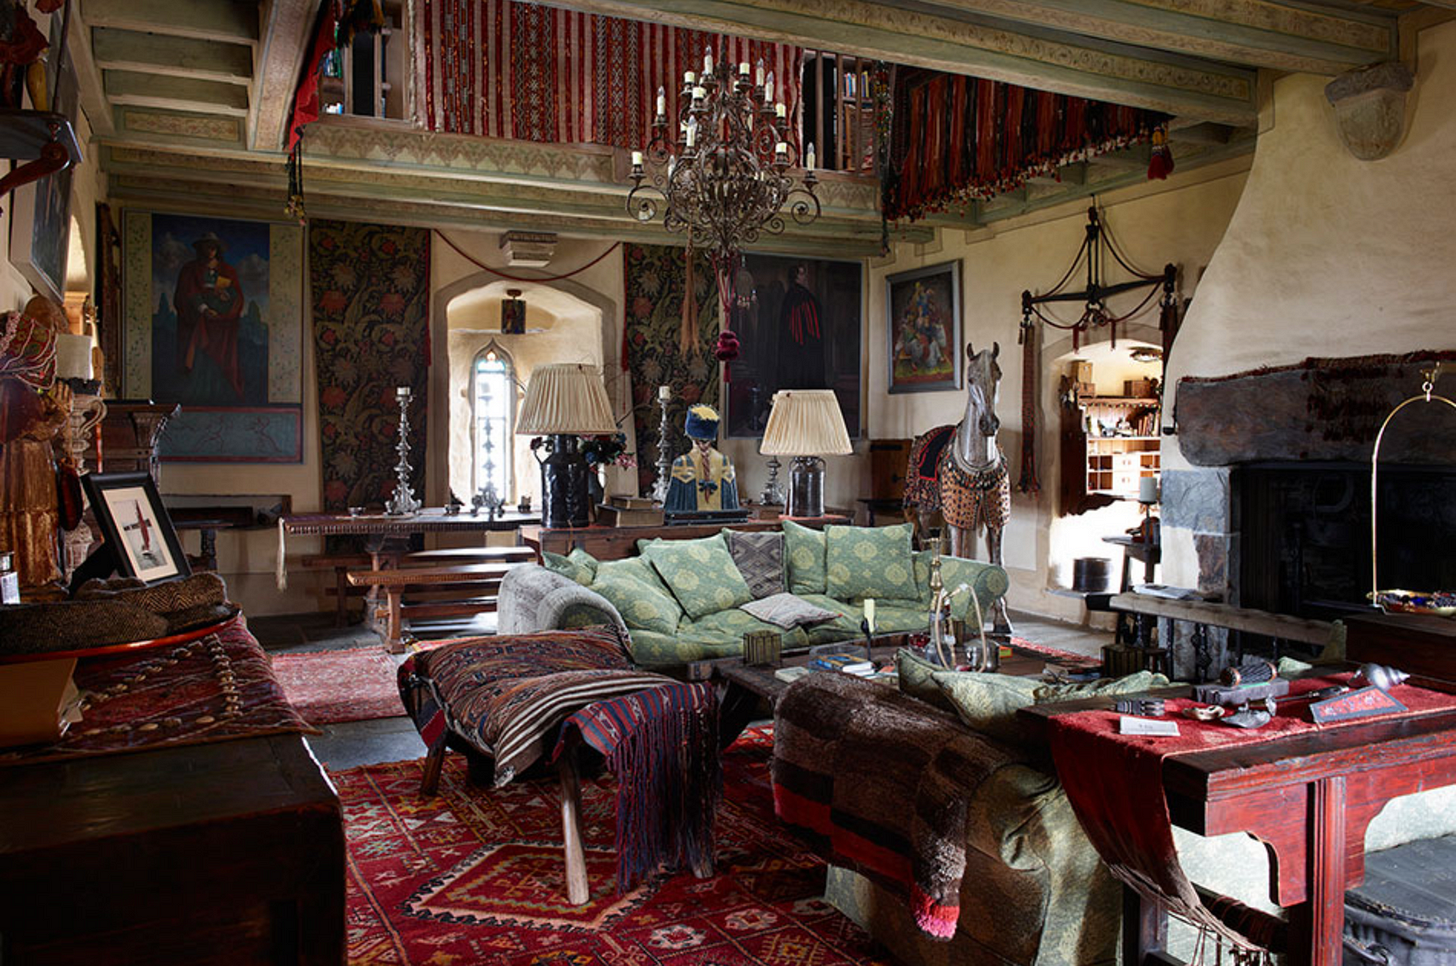 The living room of Jeremy Irons castle, with life sized wooden horse.